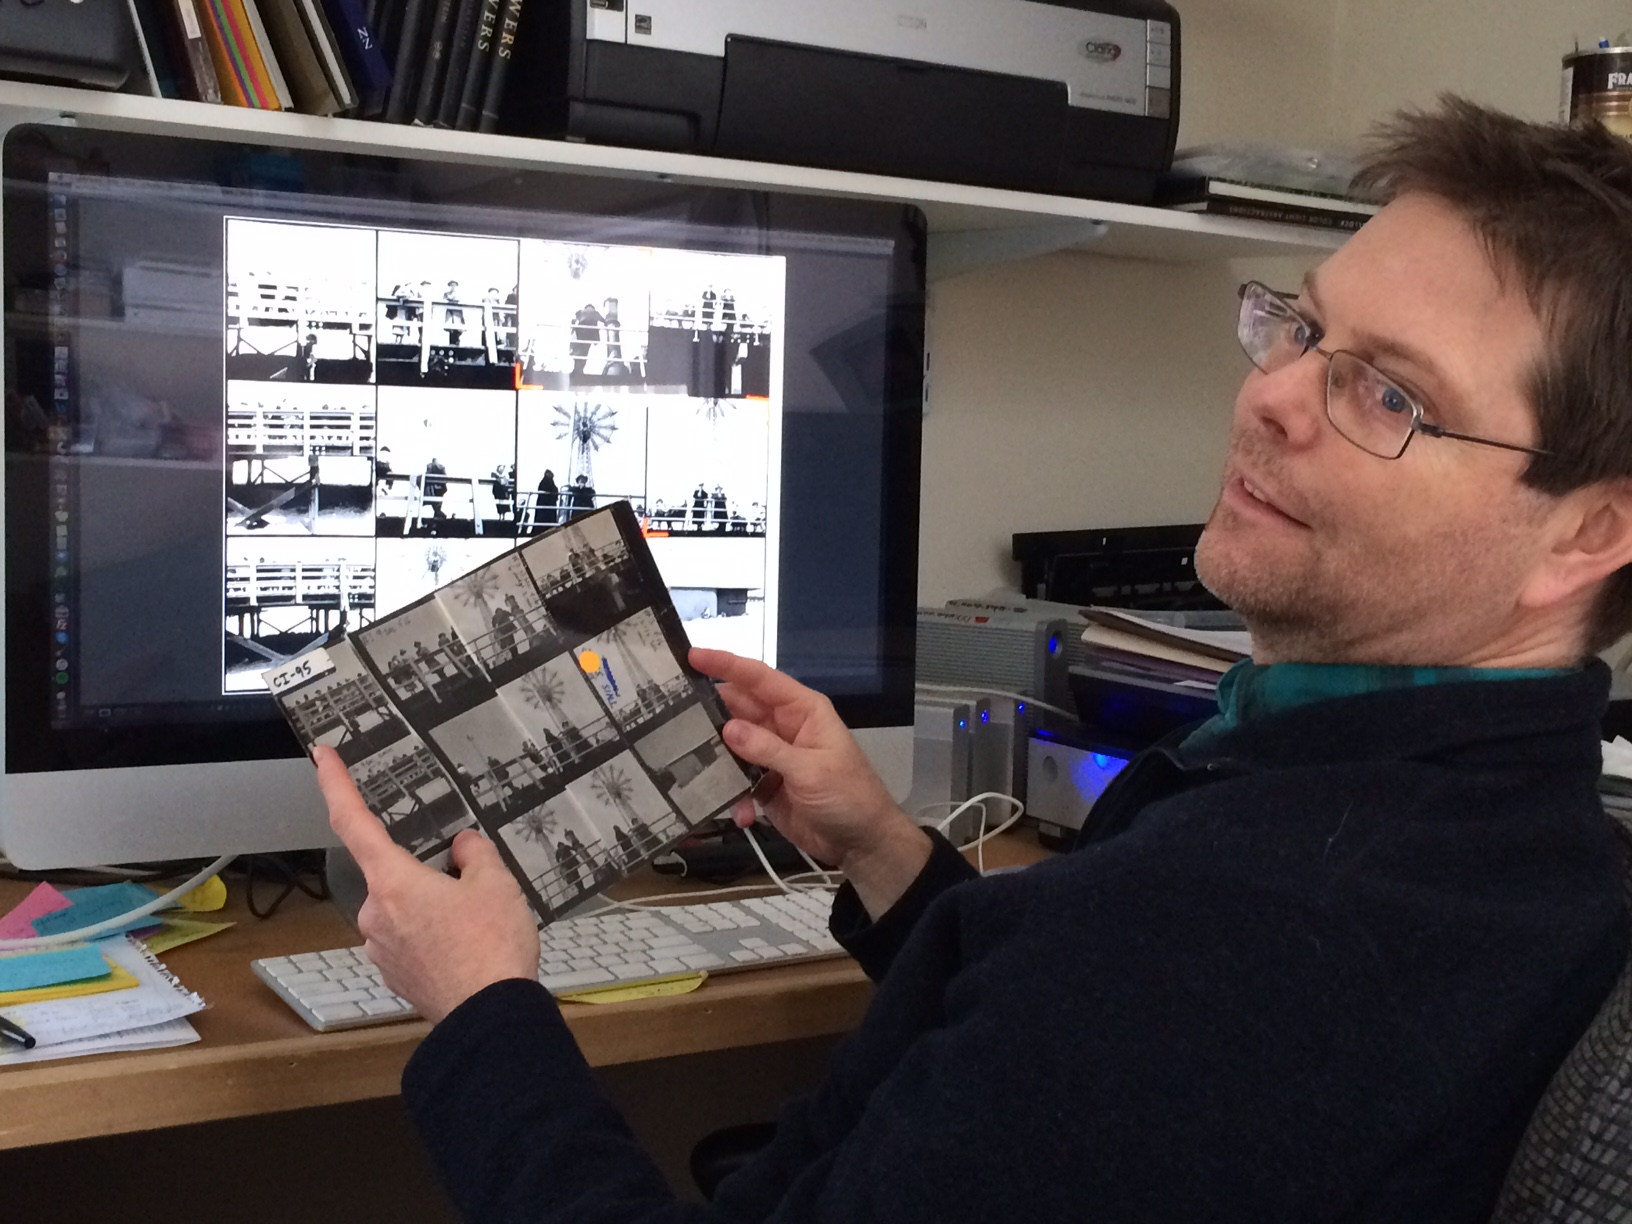 John holding up the original contact sheet ih comparison to screen view.